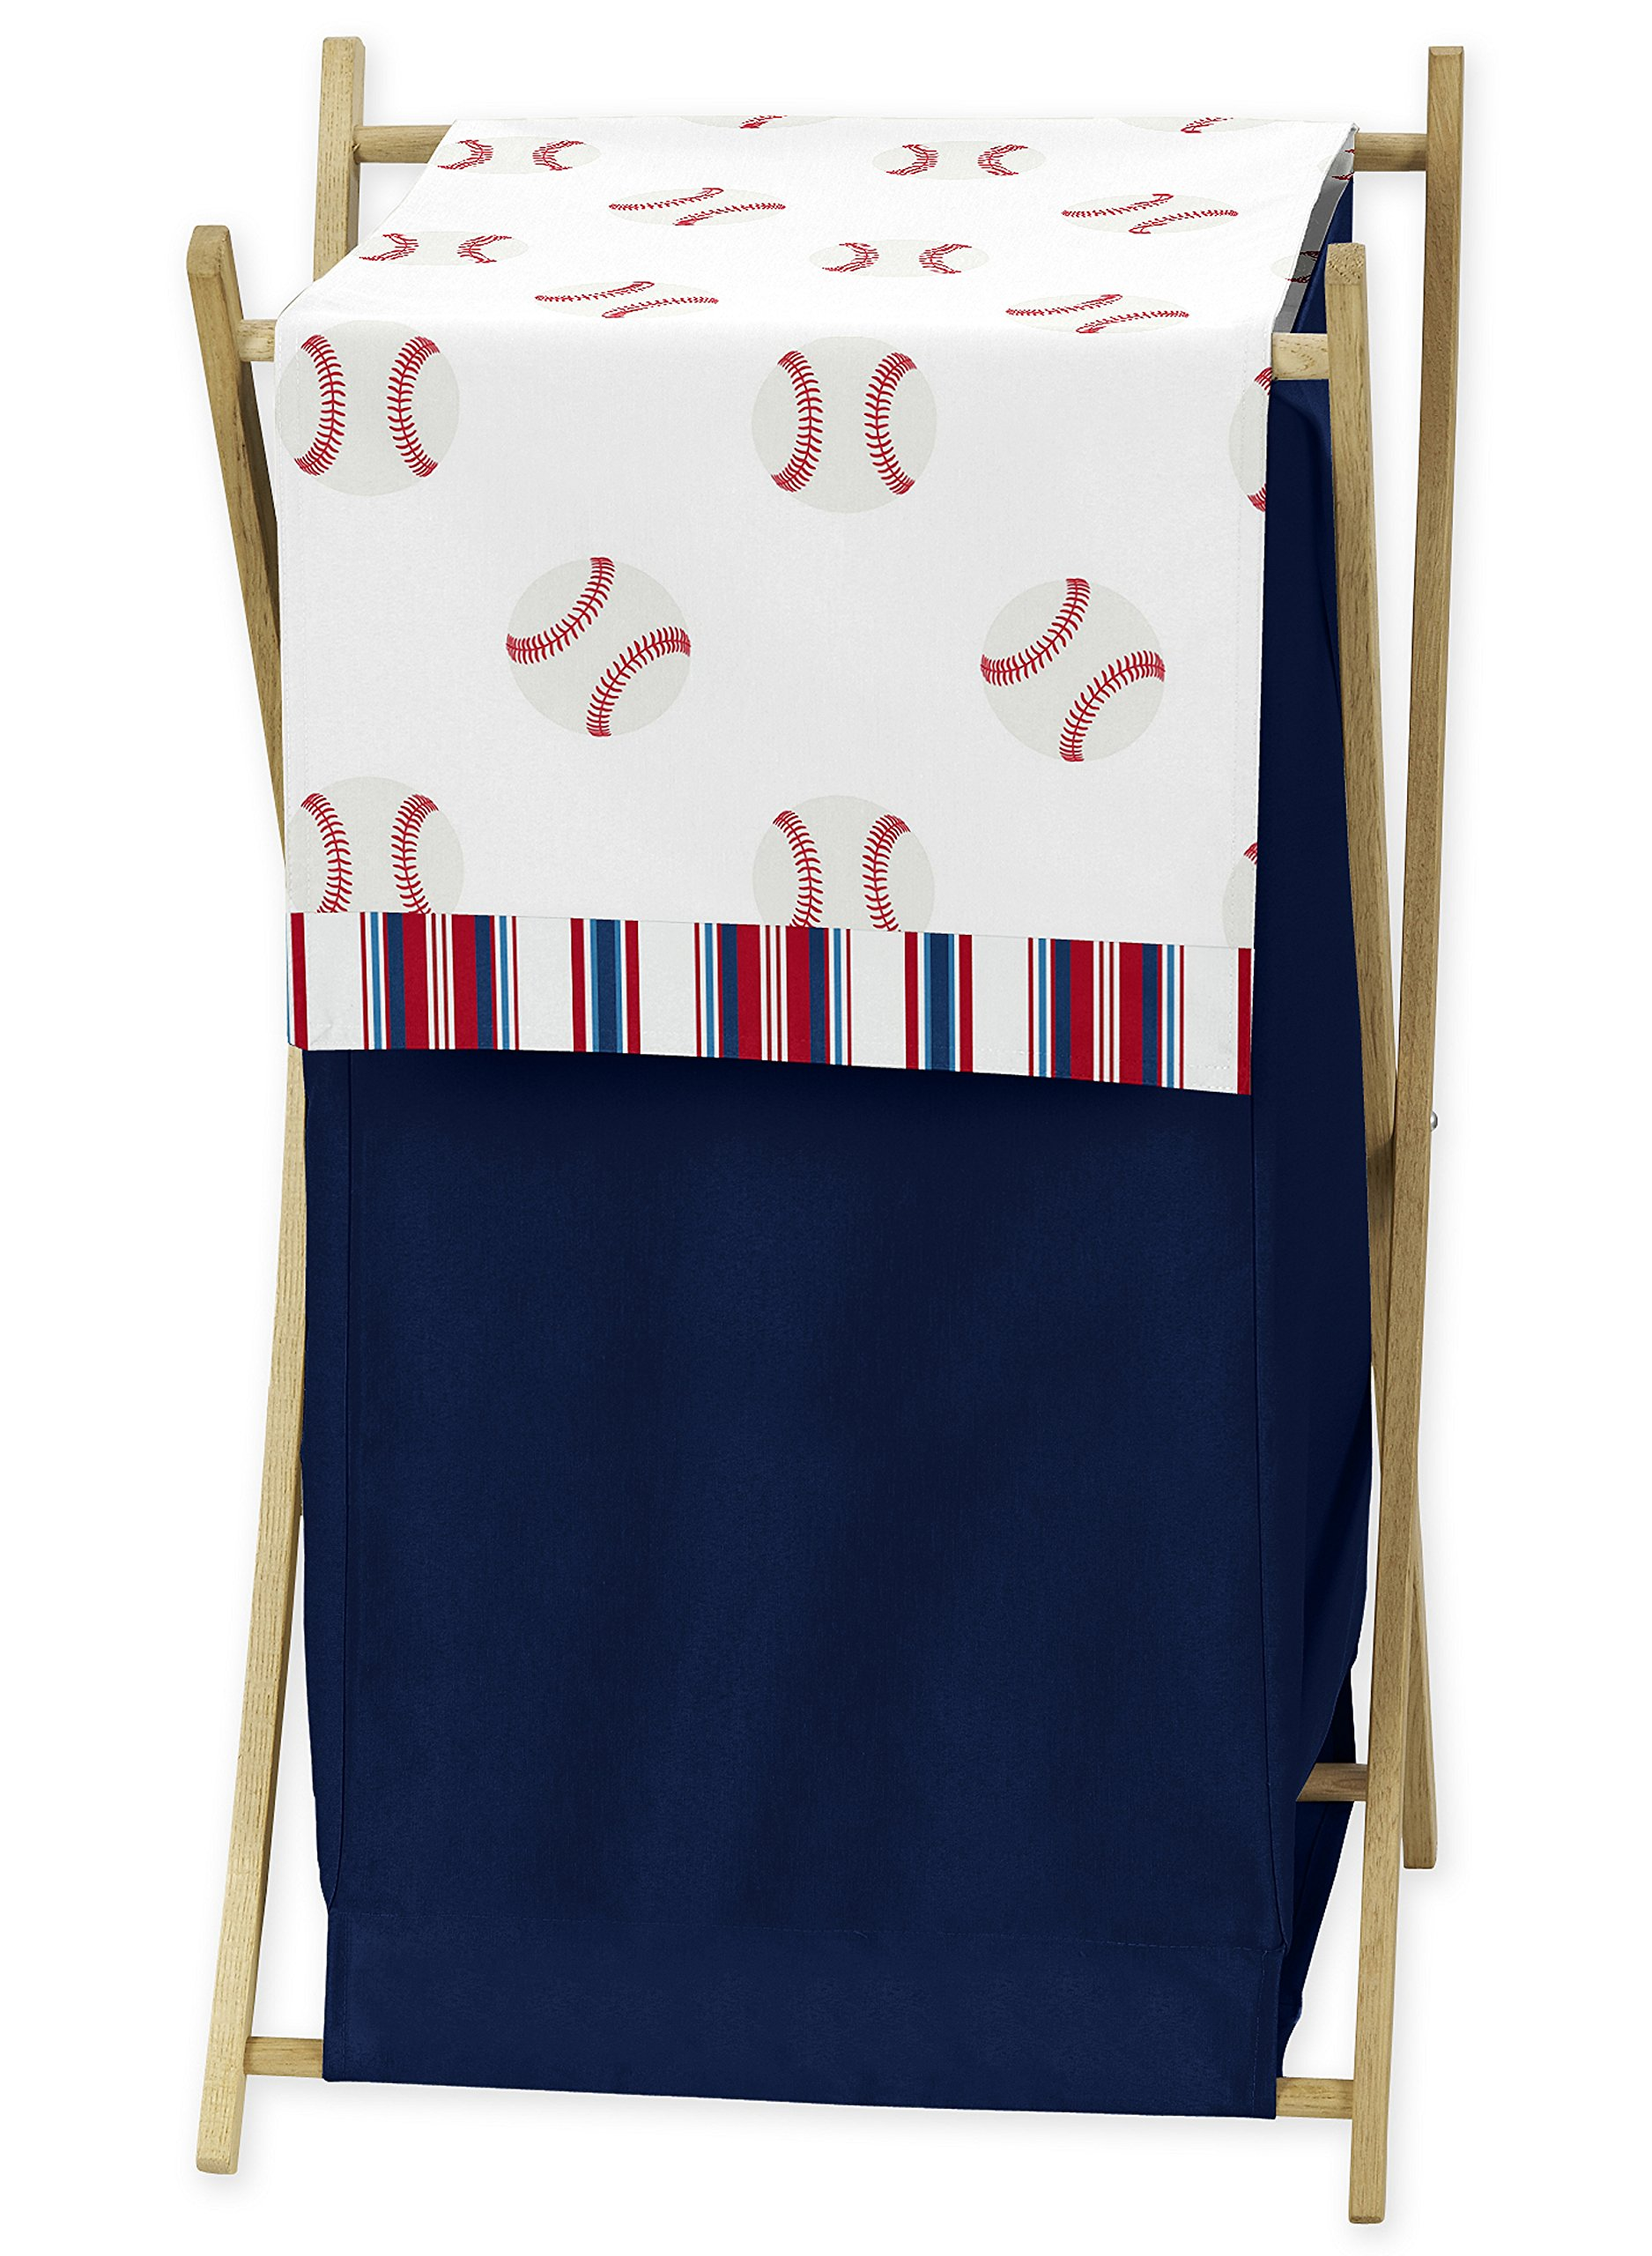 Sweet Jojo Designs Red, White and Blue Baby Kid Clothes Laundry Hamper for Baseball Patch Sports Collection by Sweet Jojo Designs